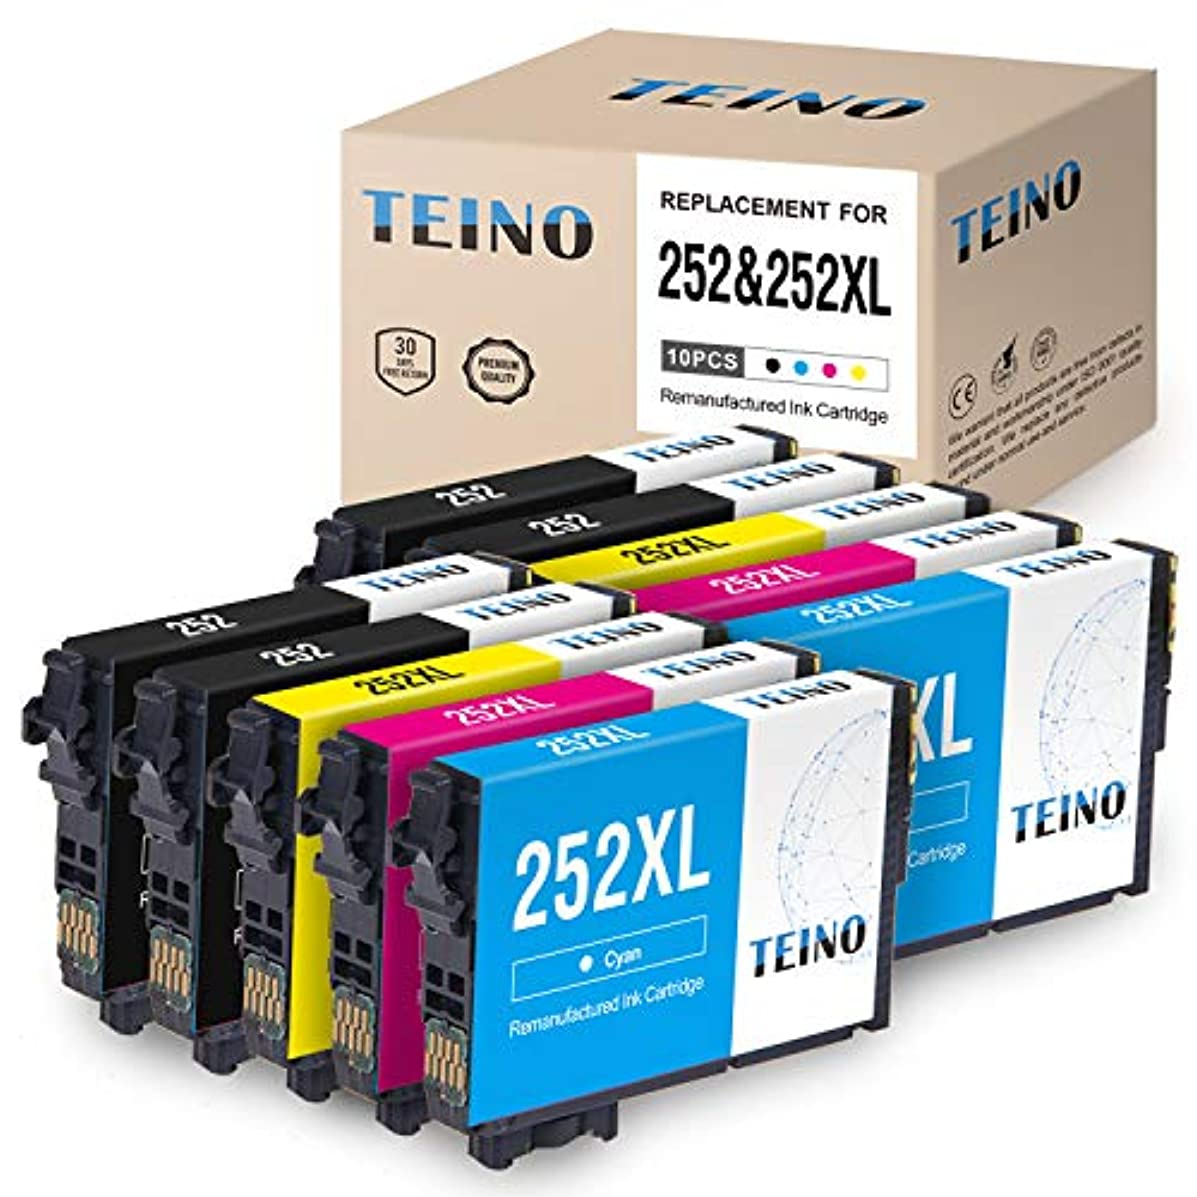 TEINO Remanufactured Ink Cartridge Replacement for Epson 252 252 XL T252 T252XL120 (4 Black 2 Cyan 2 Magenta 2 Yellow, 10-Pack)